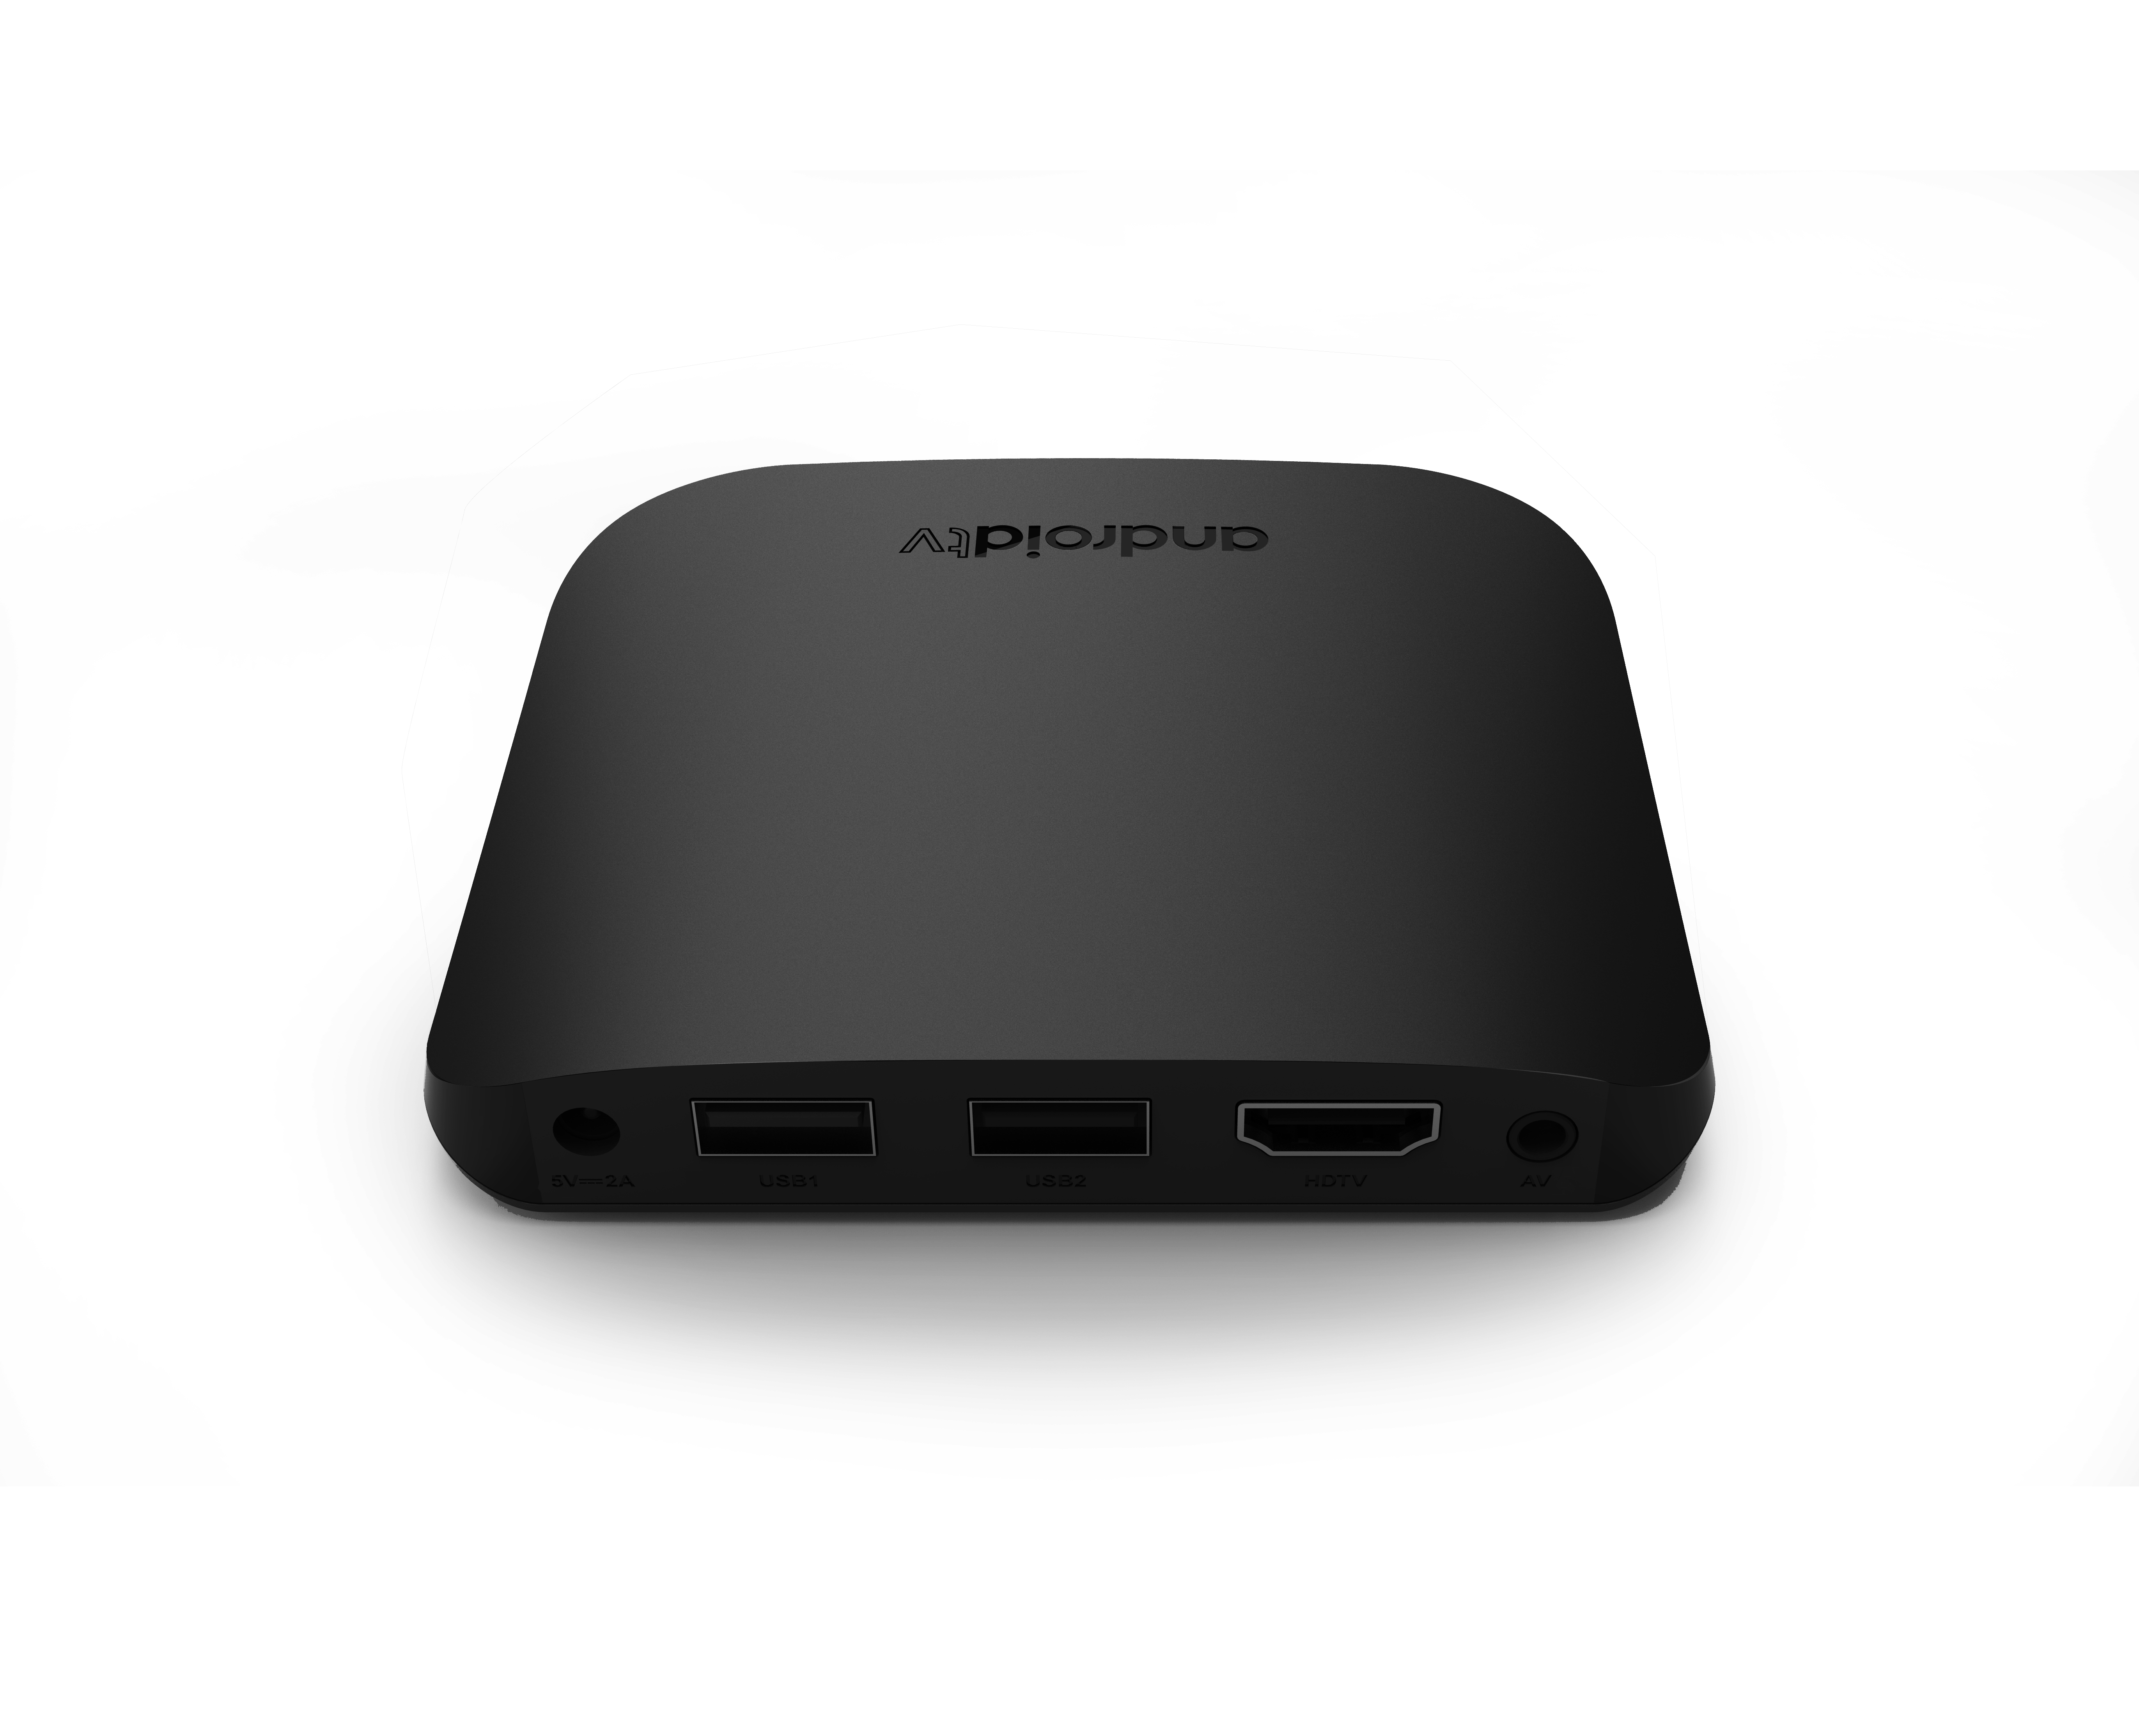 Free Java Games Download Android Mini Pc M8 S Plus W Android 7 1 1g 8g  Smart Tv Player - Buy Free Java Games Download,Android Mini Pc M8 S Plus